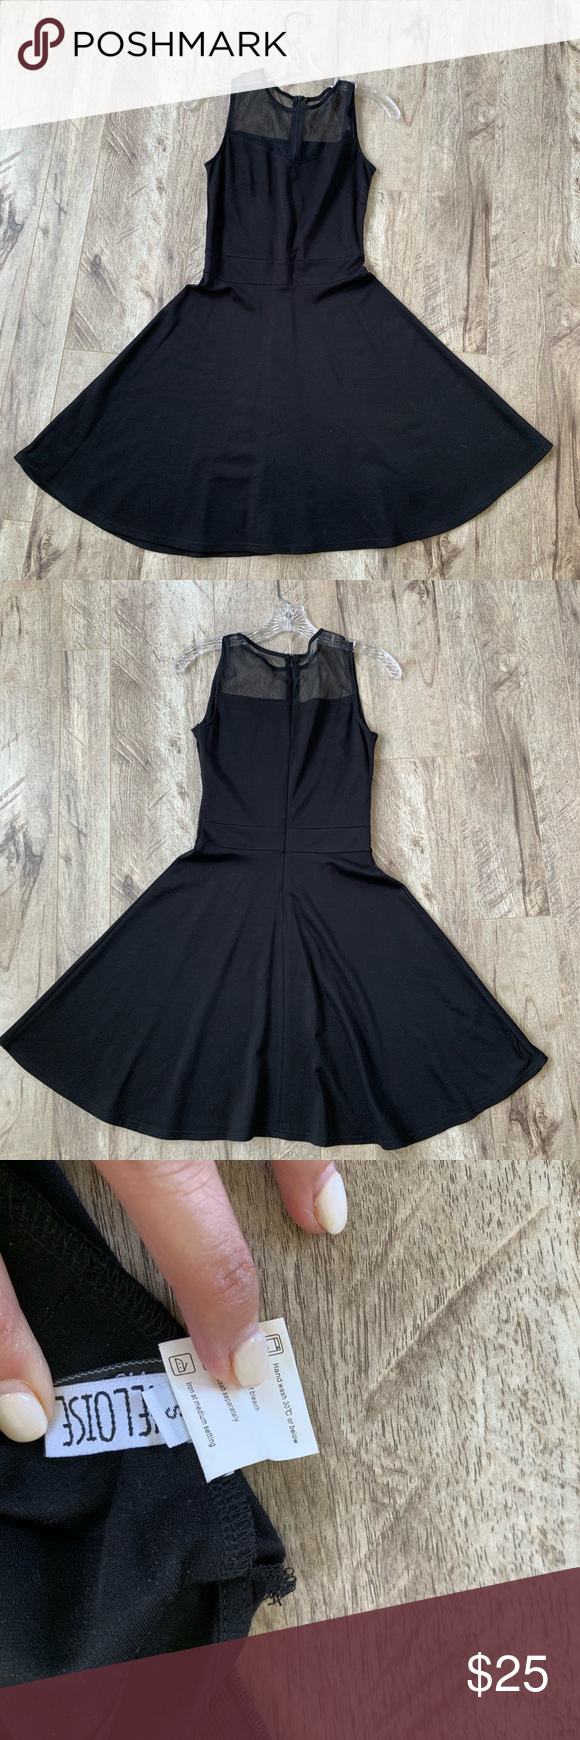 Black Skater Style Dress With Black Sheer Top Skater Style Dress Black Skater Dress Black Sheer Top [ 1740 x 580 Pixel ]